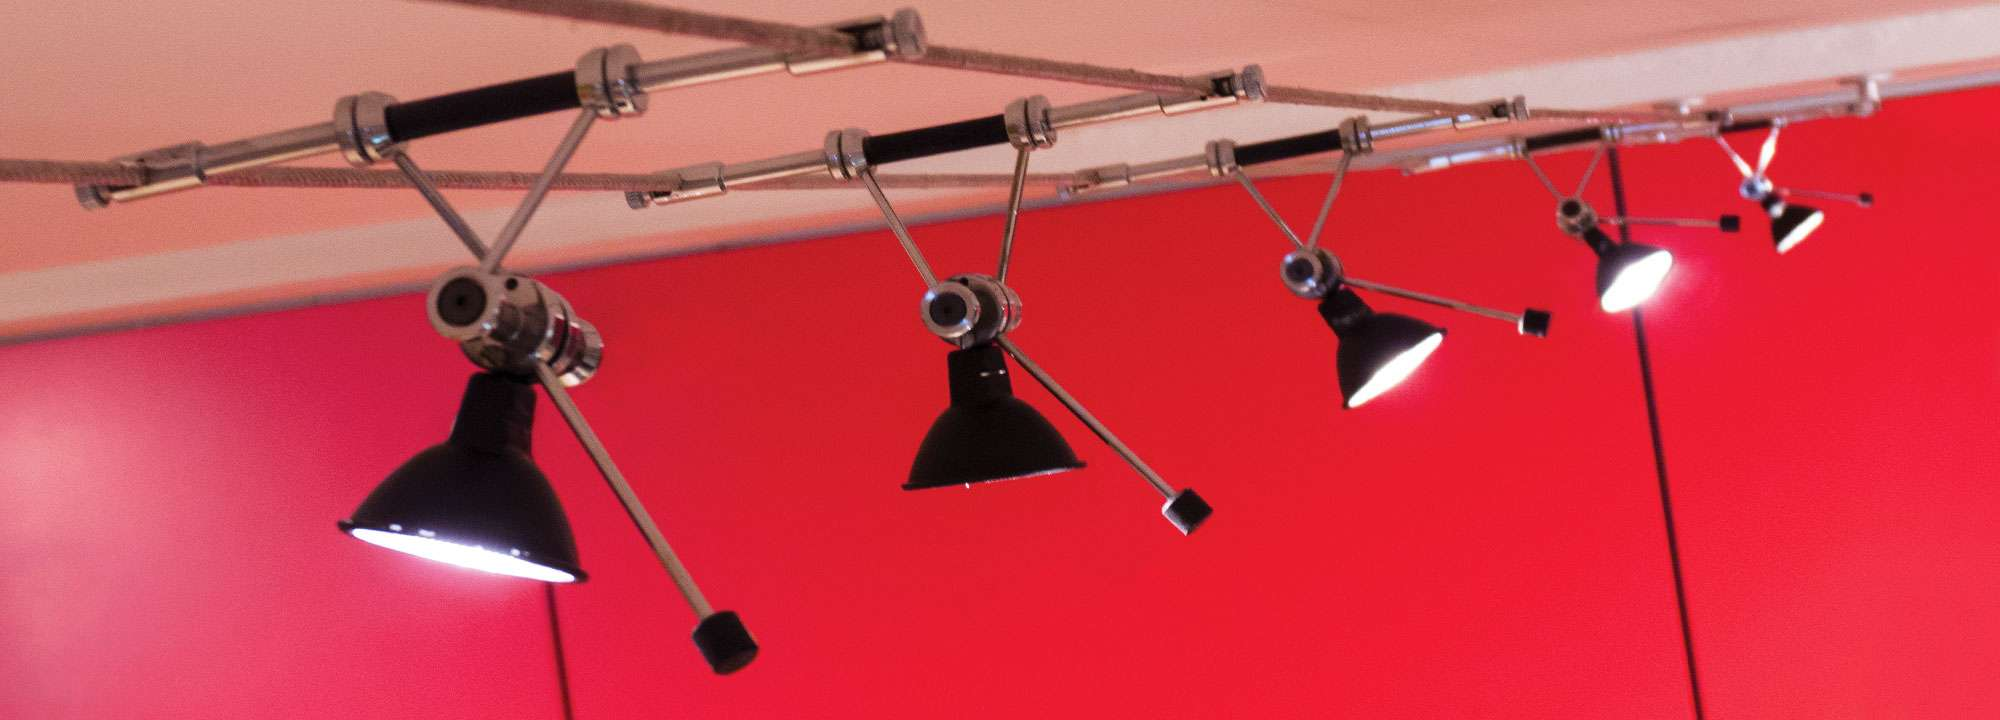 Cable Suspended Lighting Manufactured By Kit Uk